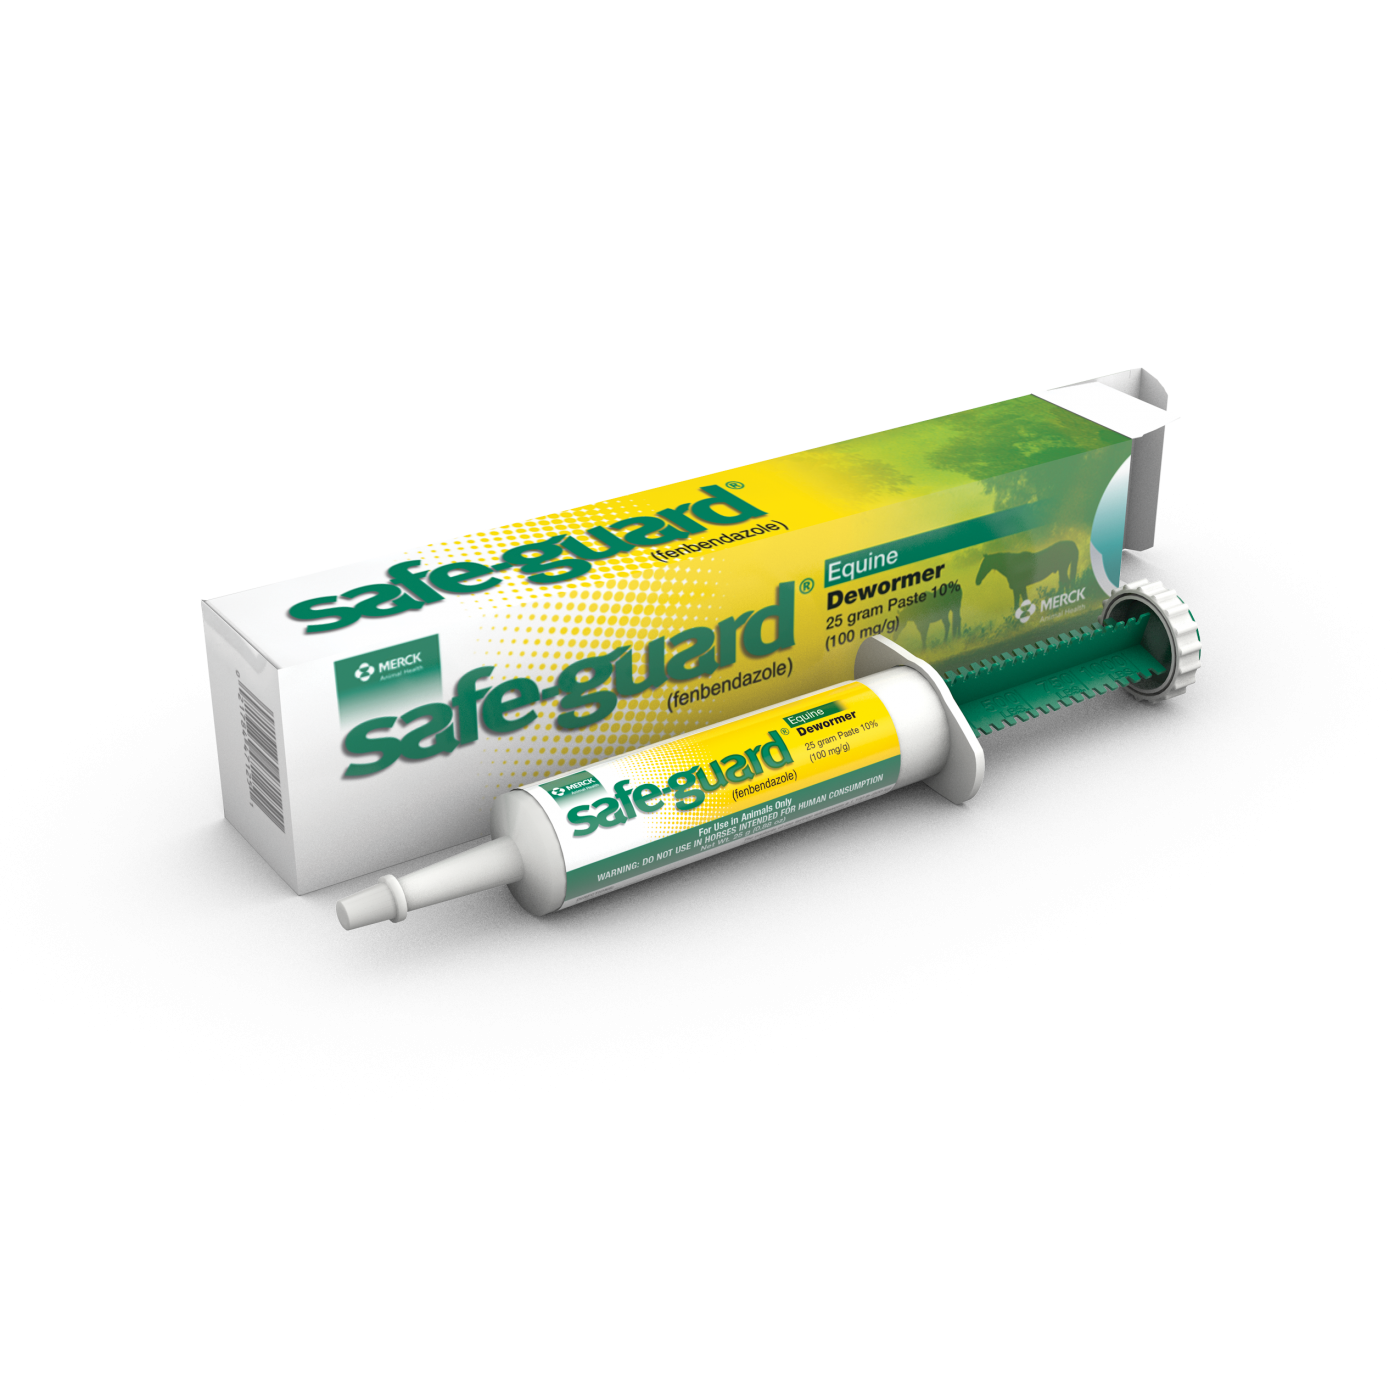 Safeguard paste 25g